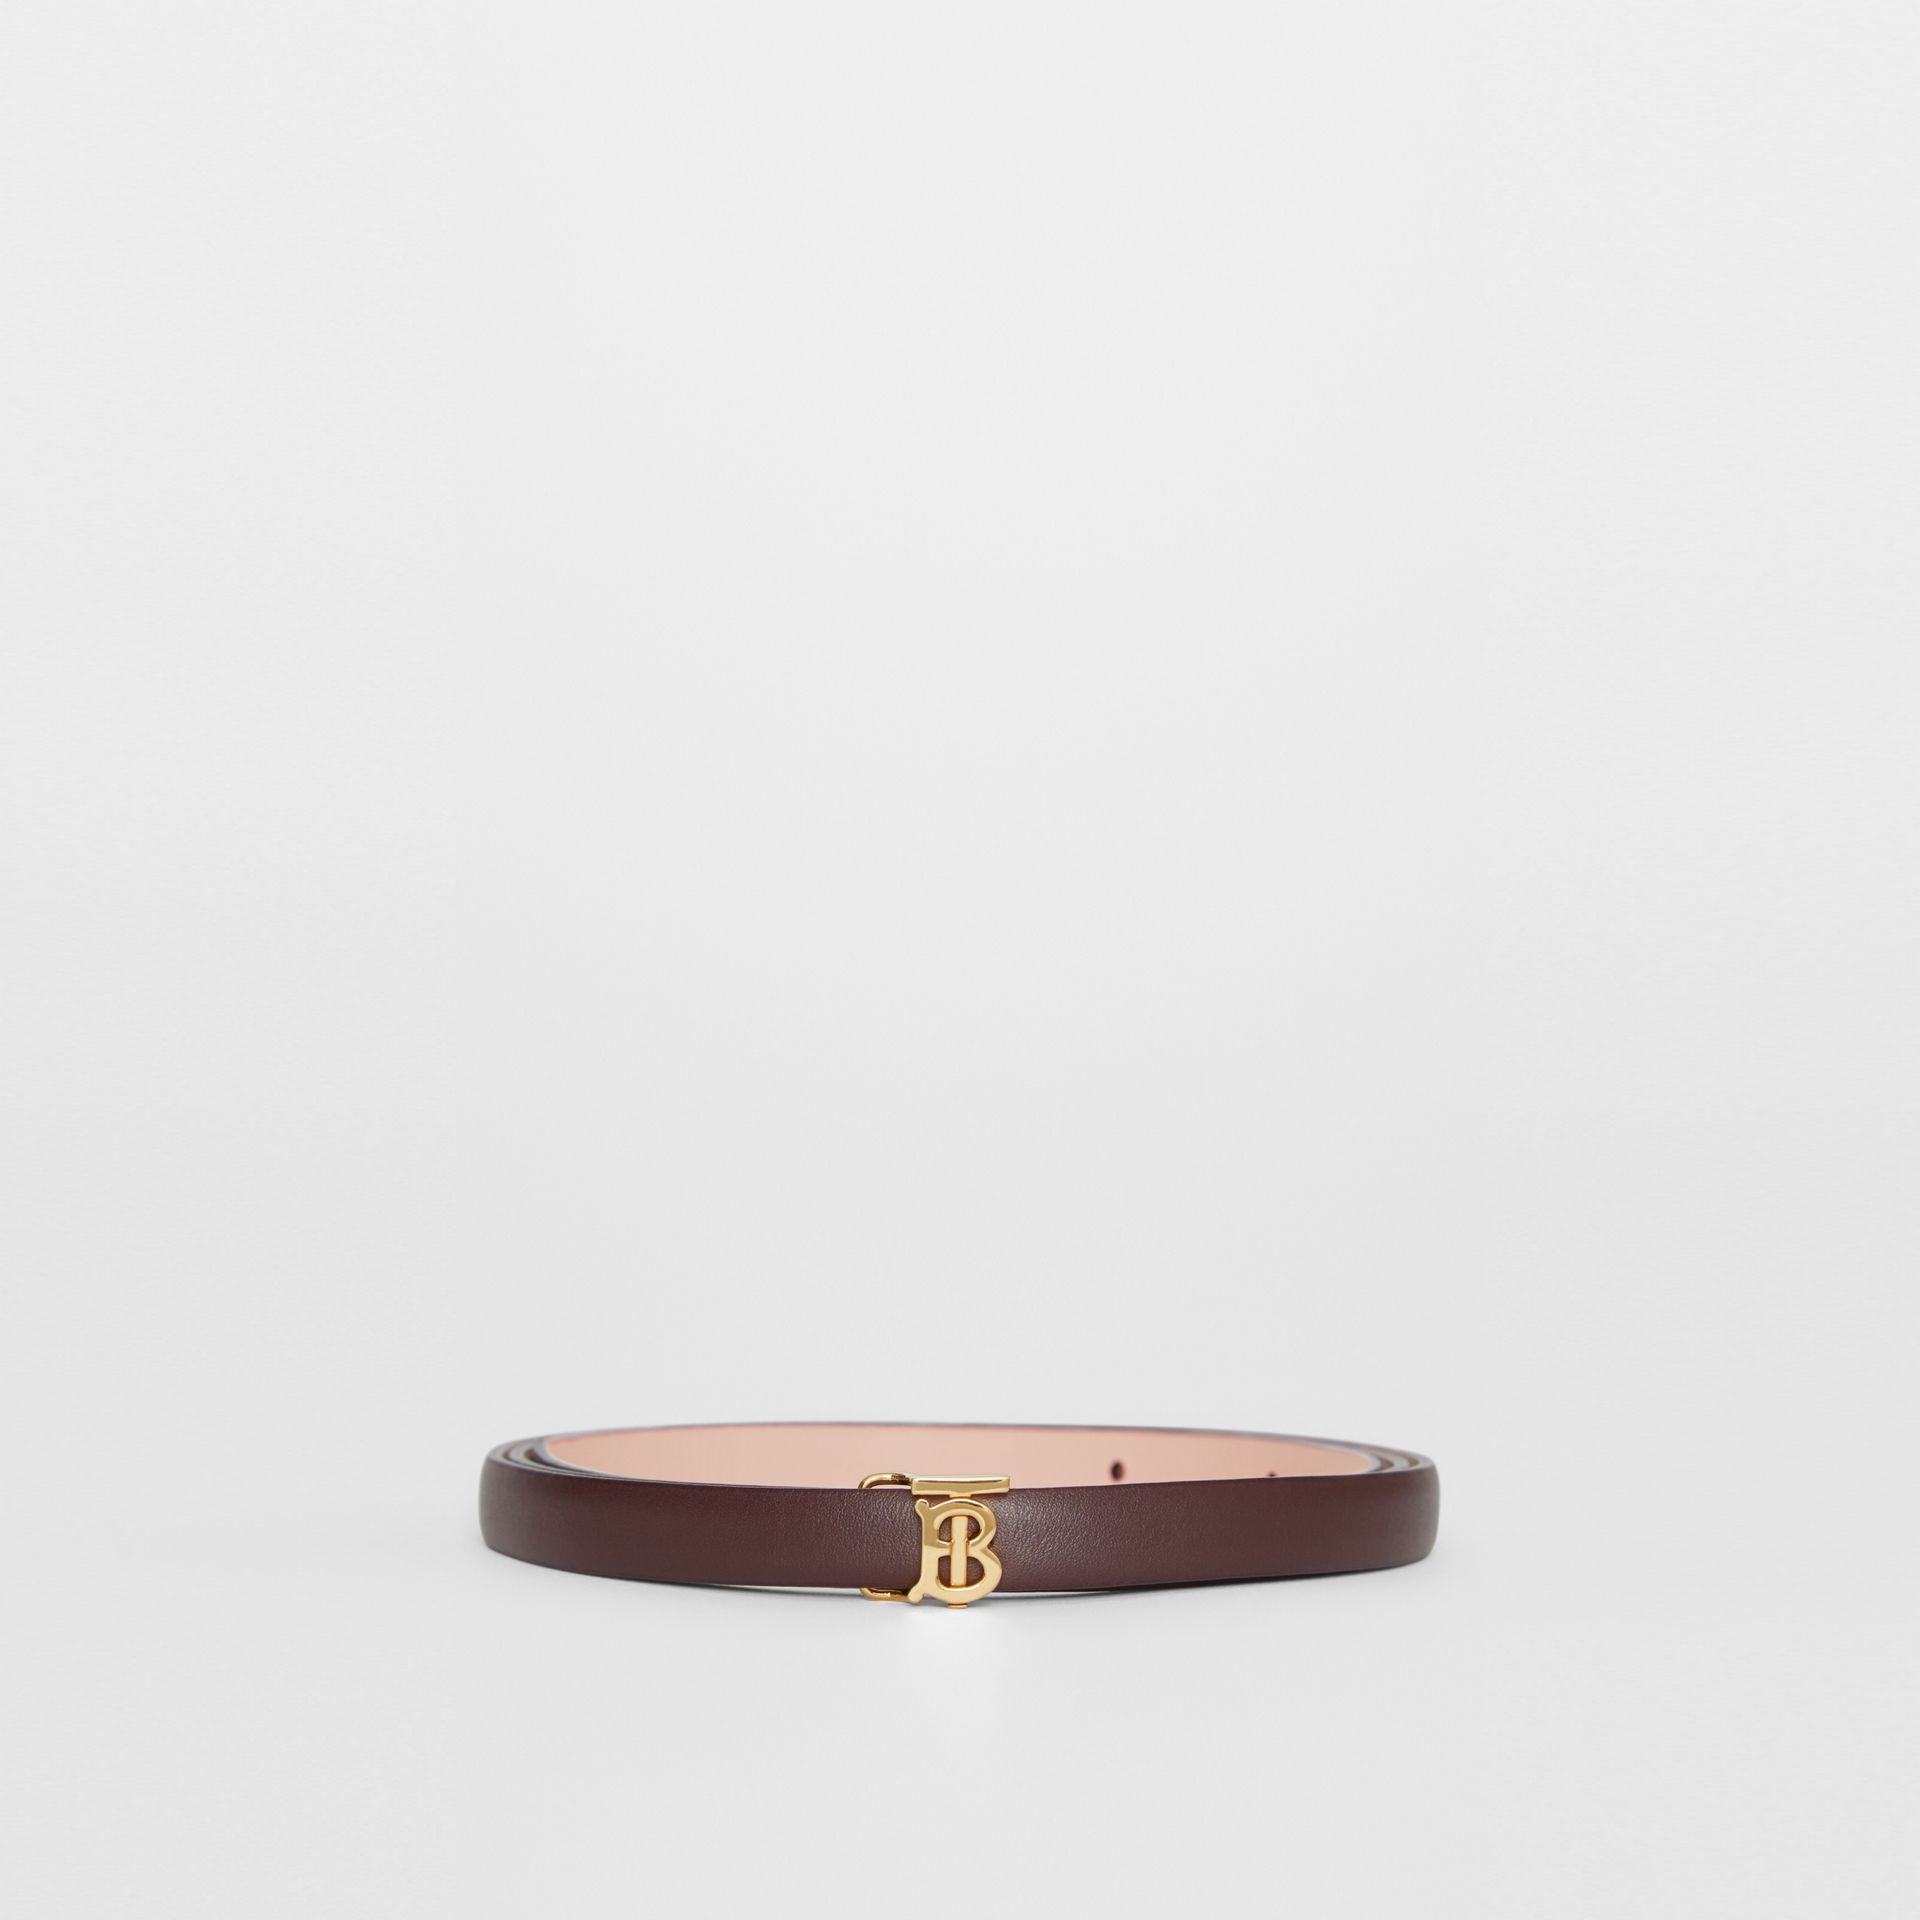 Reversible Monogram Motif Leather Wrap Belt in Oxblood/rose Beige - Women | Burberry Canada - gallery image 3